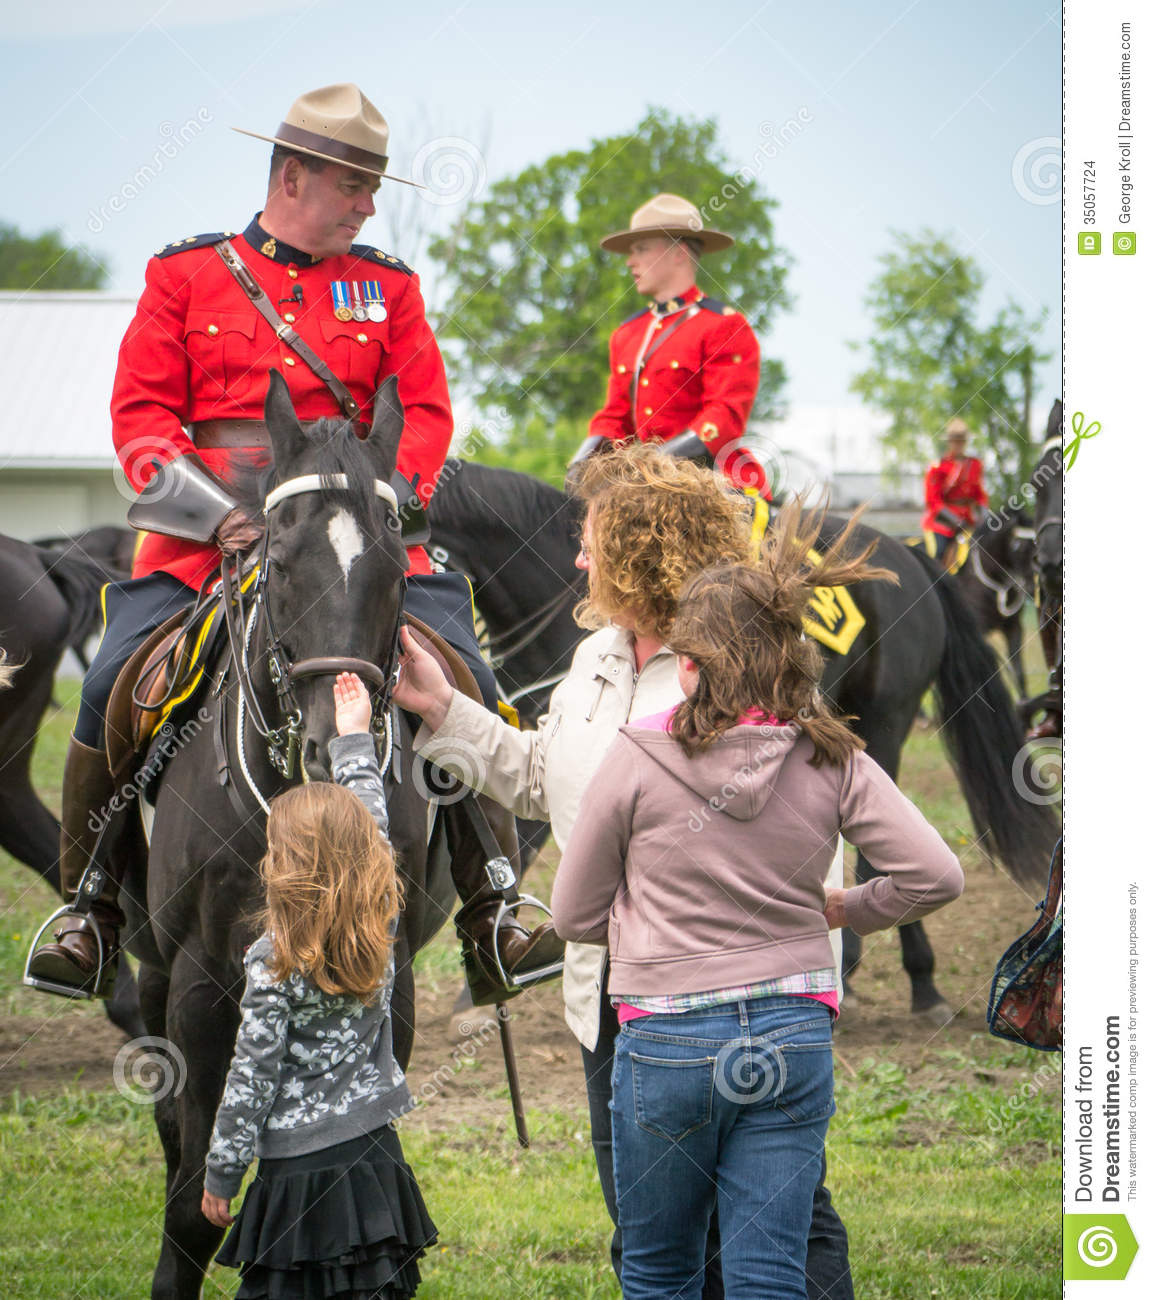 Rcmp meet and greet editorial stock image image of meeting 35057724 download rcmp meet and greet editorial stock image image of meeting 35057724 m4hsunfo